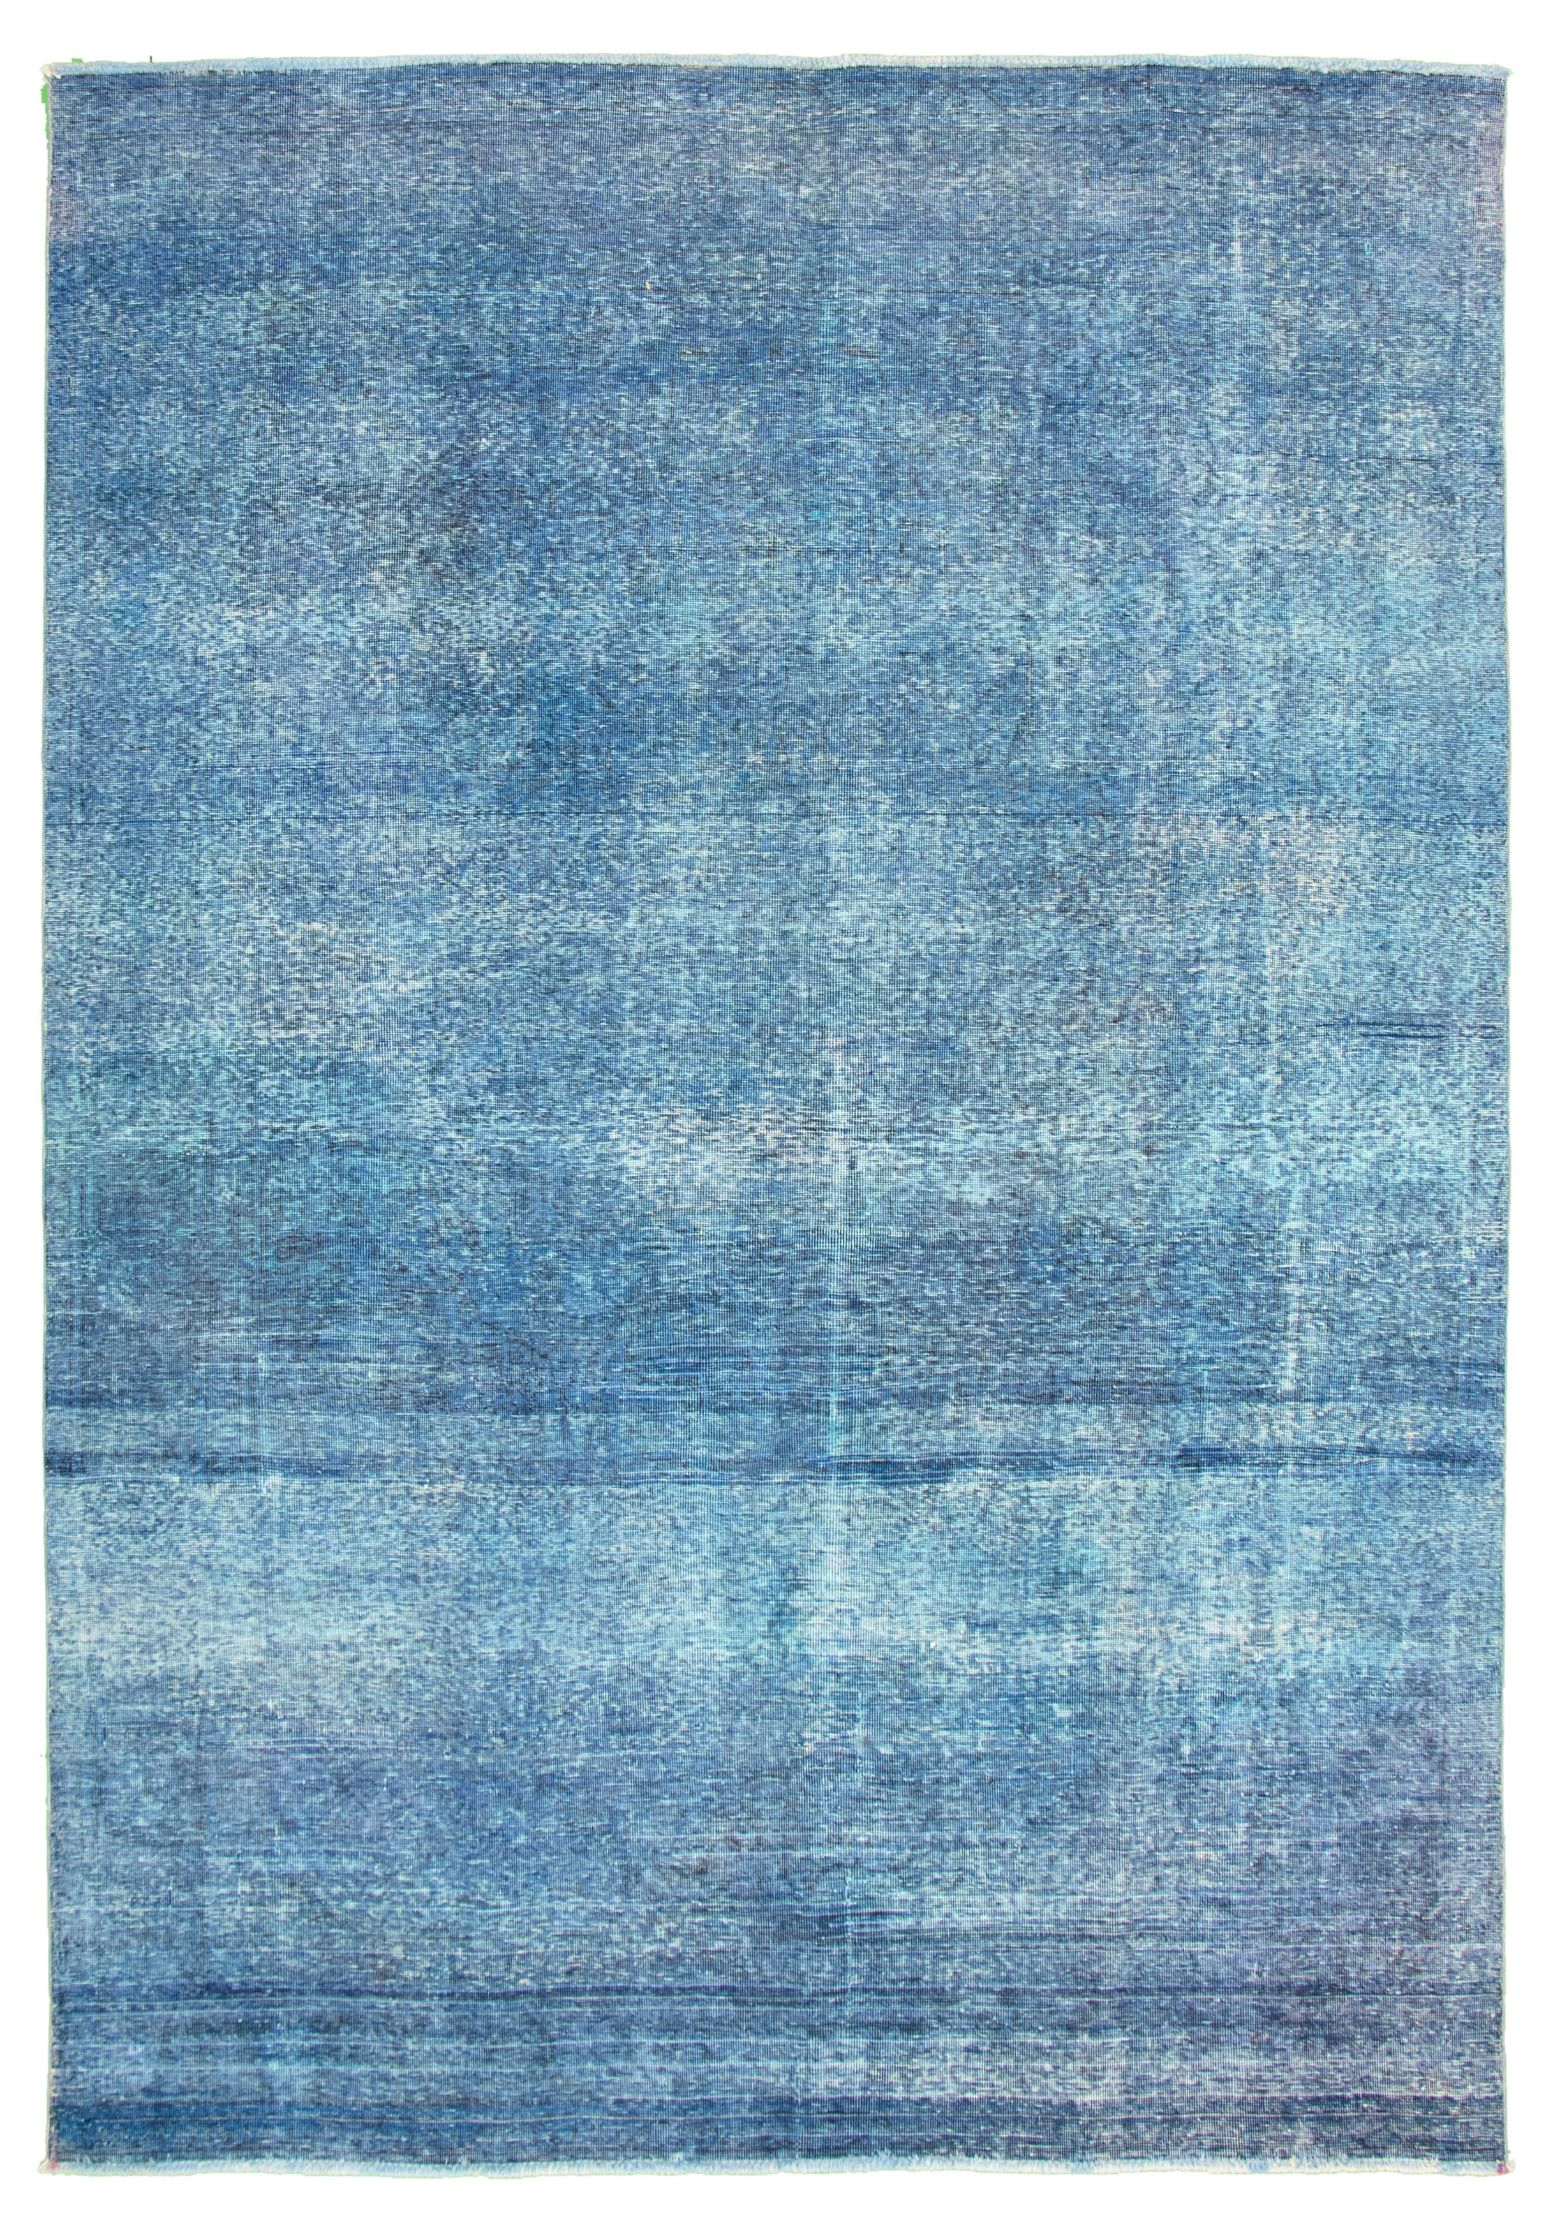 """Hand-knotted Color Transition Dark Blue Wool Rug 8'0"""" x 11'4"""" Size: 8'0"""" x 11'4"""""""